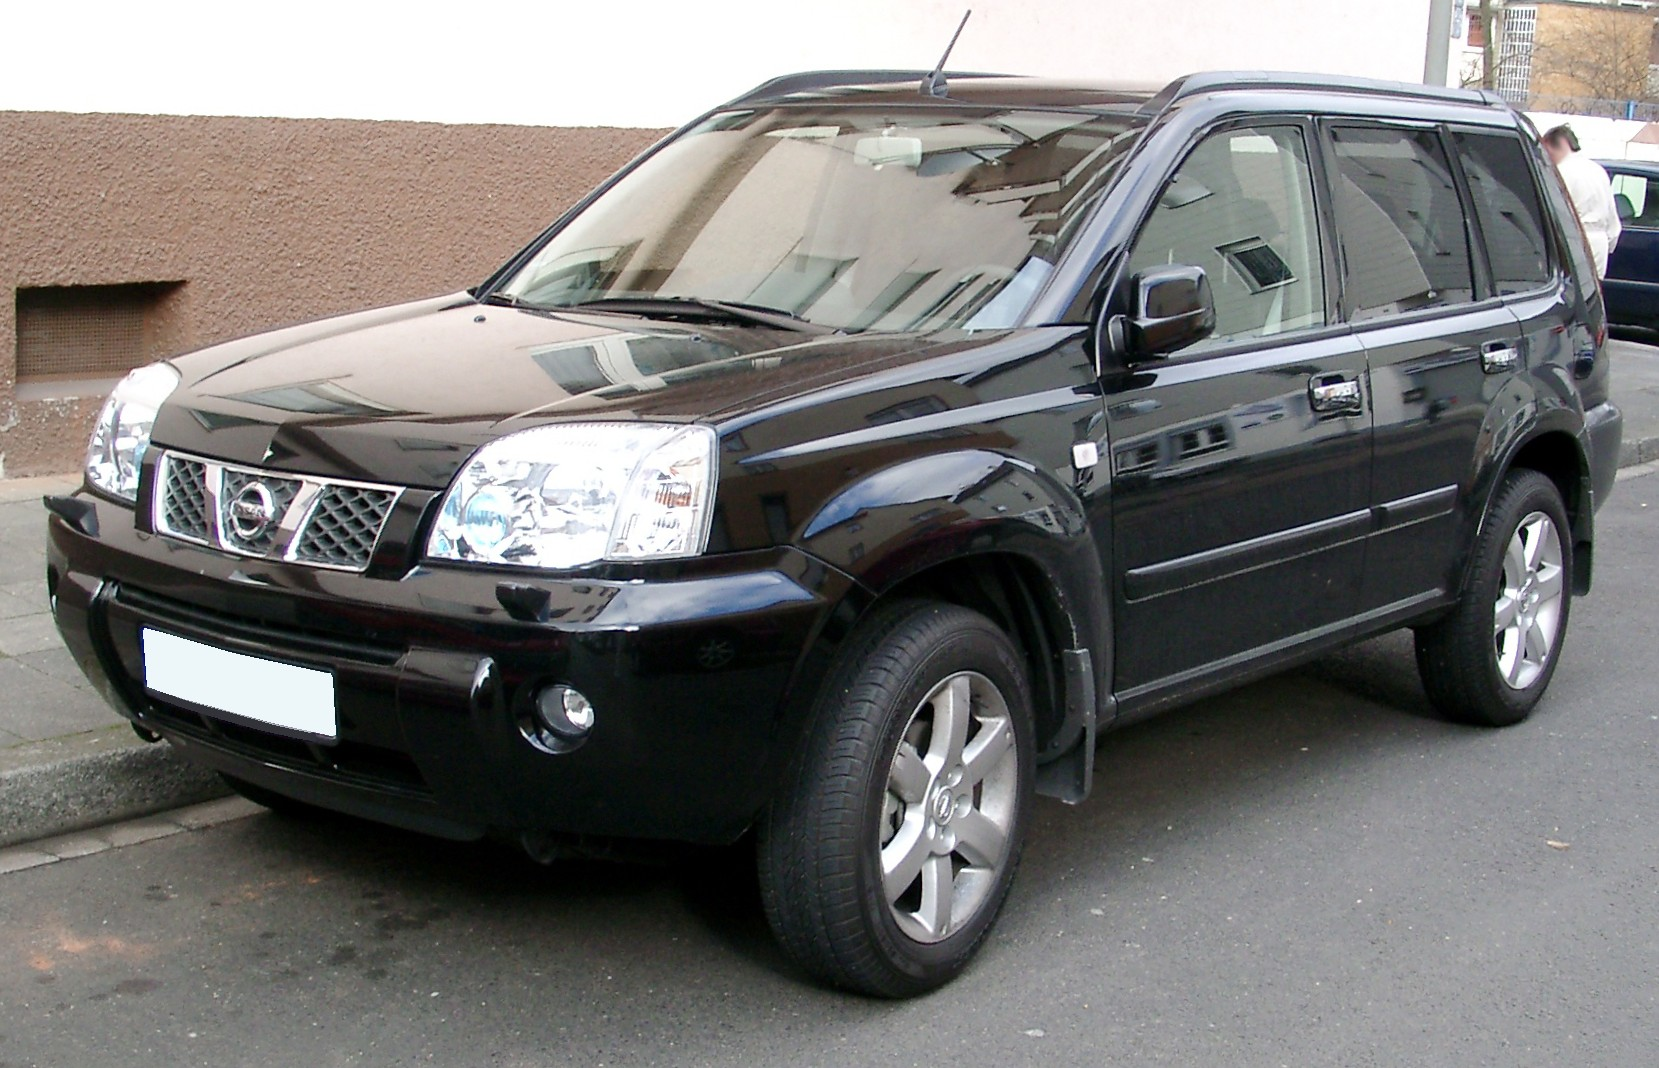 2006 Nissan X-Trail [image credit: wikipedia]